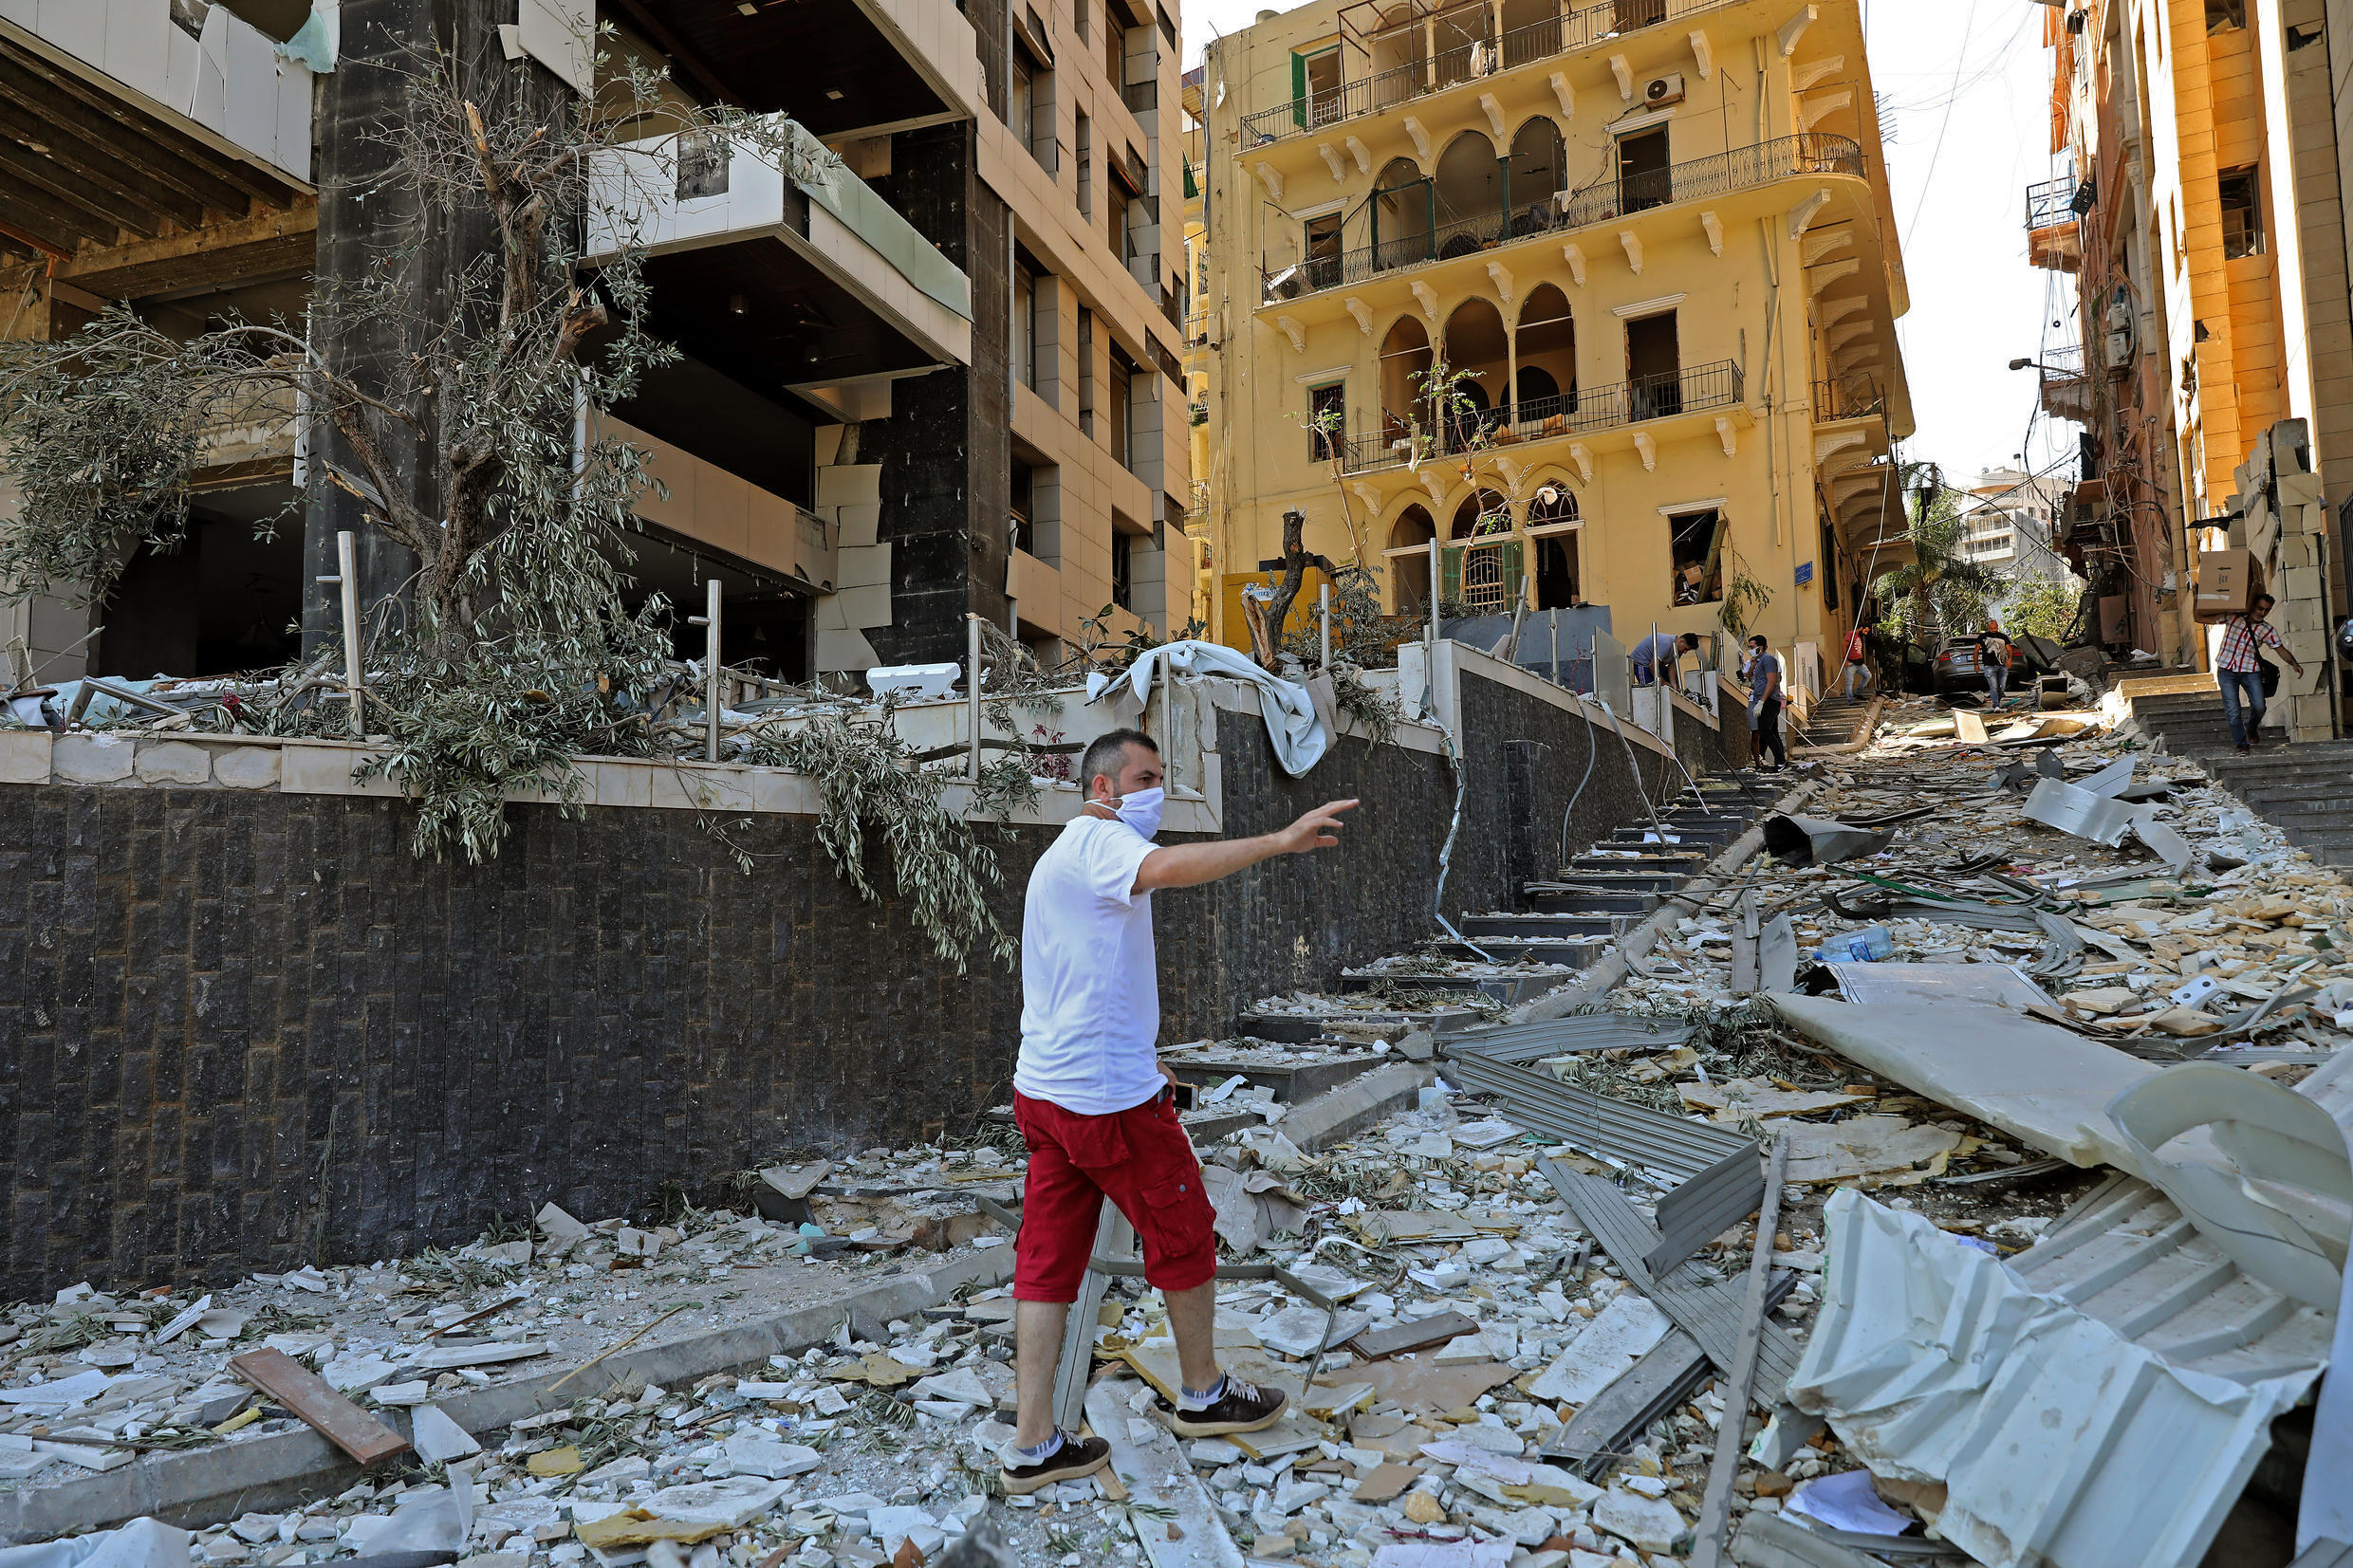 A man inspects the damage of the blast that tore through Lebanon's capital.